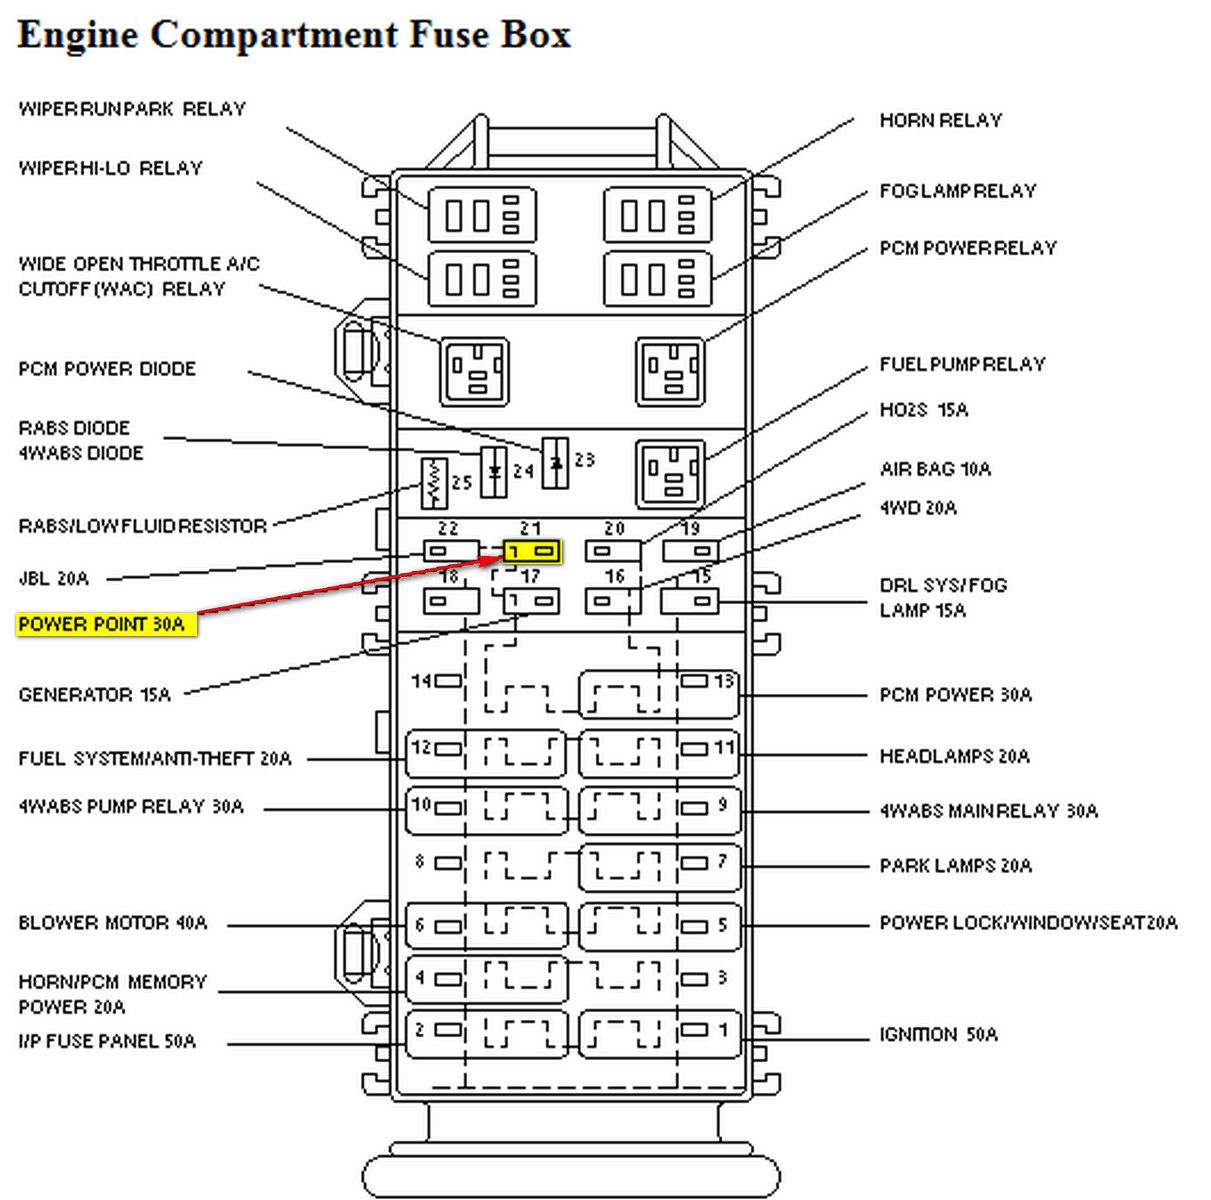 2007 ford ranger fuse box diagram 1997 ford ranger fuse box diagram truck part diagrams ...